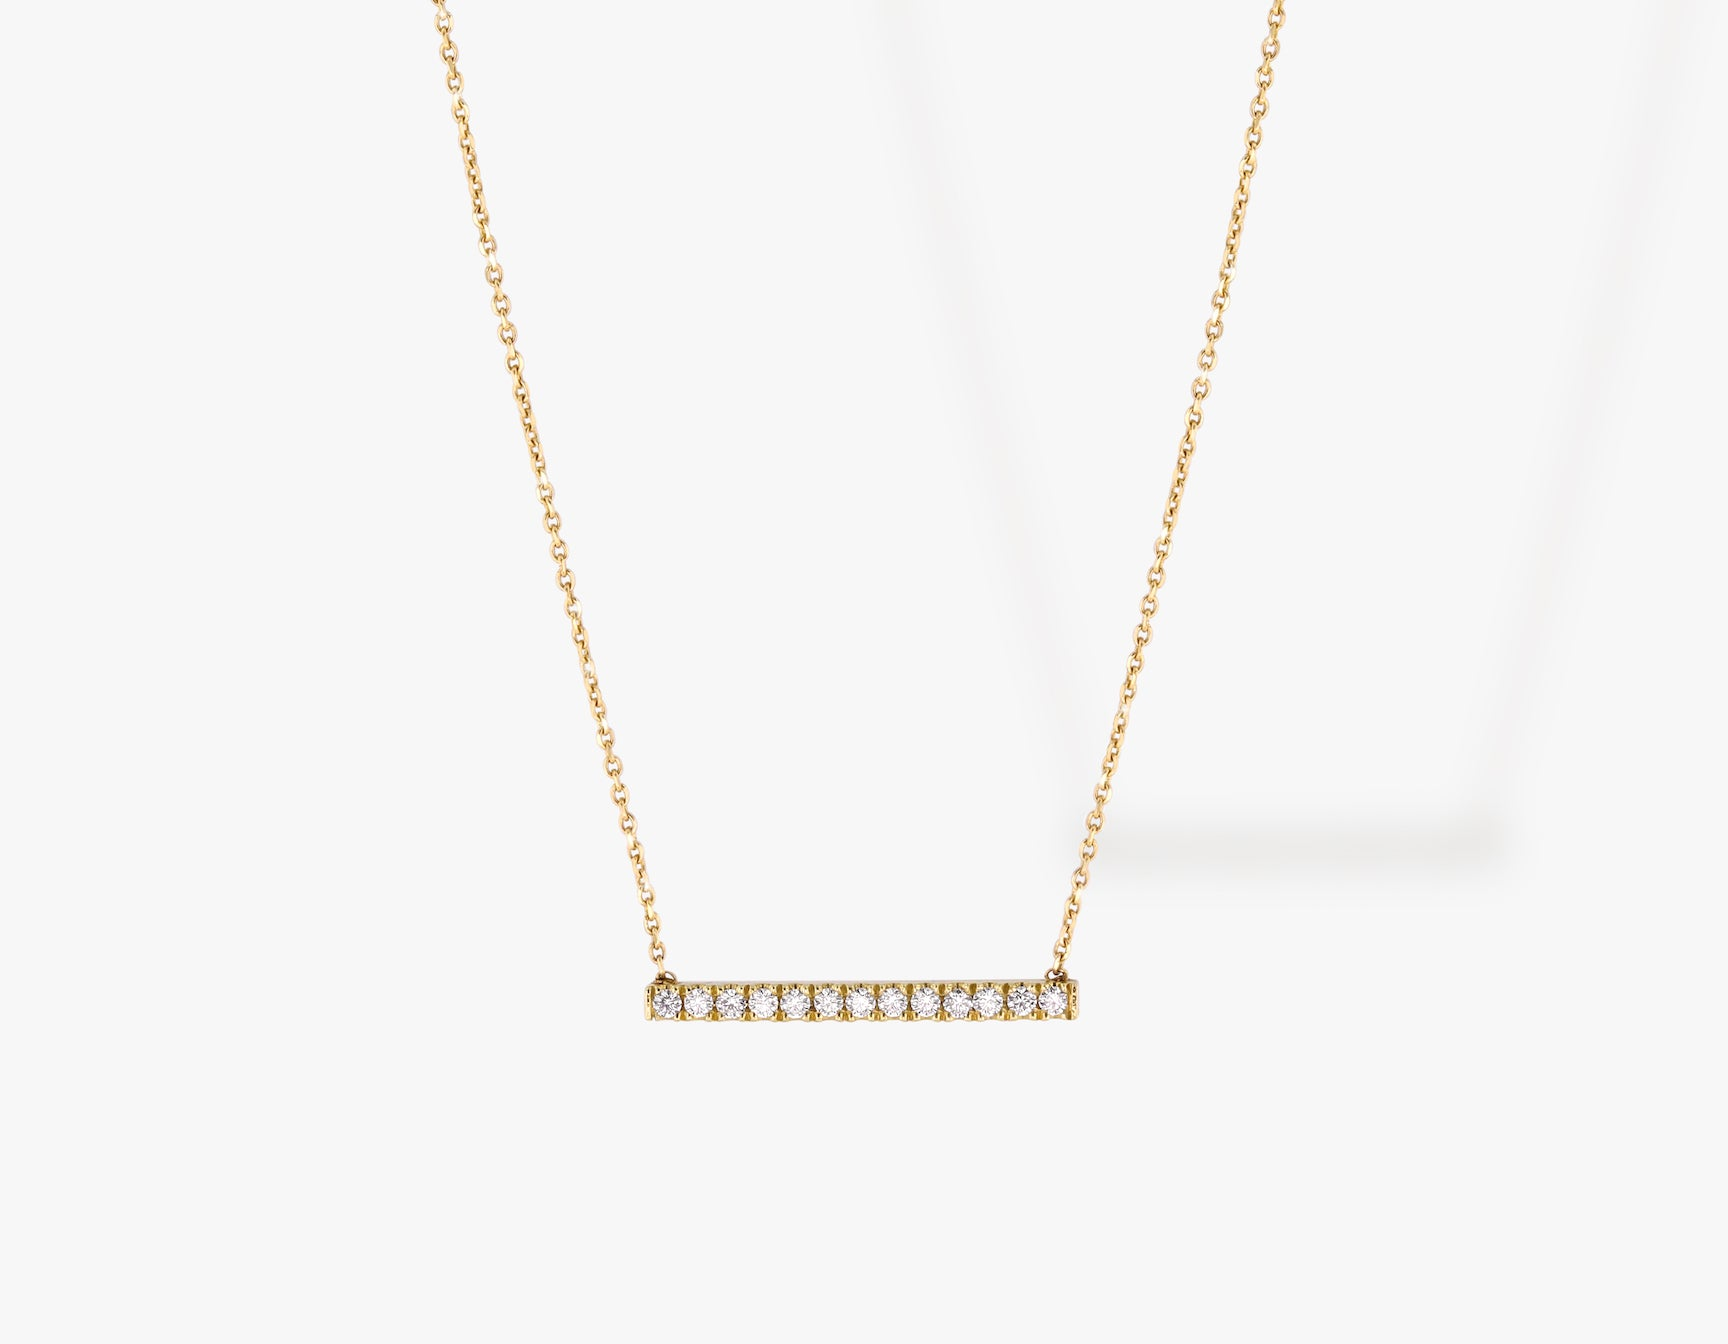 Vrai solid gold Pave Line Necklace, 14K Yellow Gold